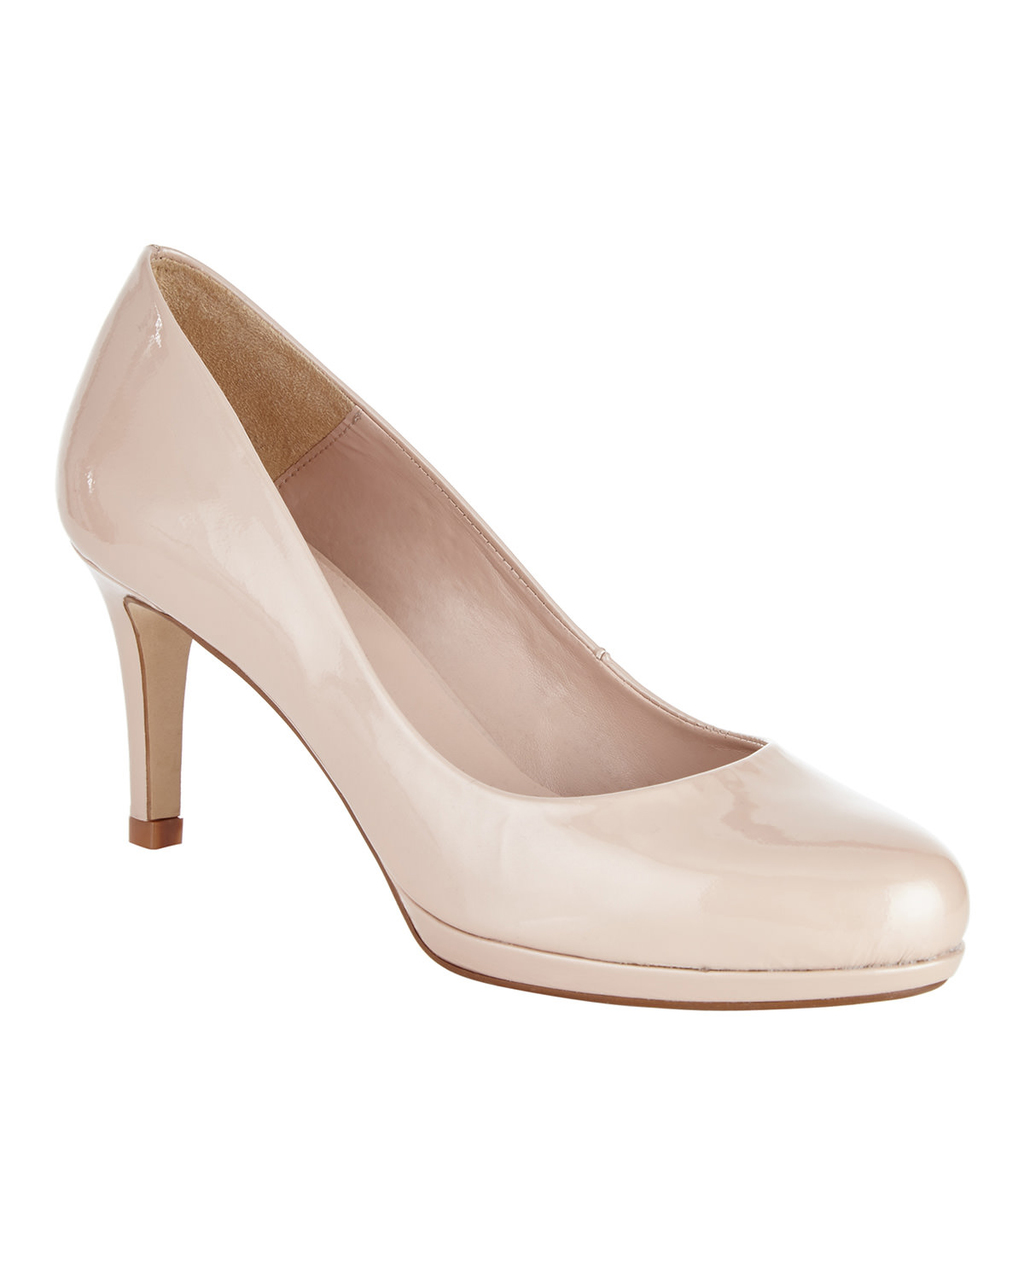 Amara Leather Court - predominant colour: blush; occasions: evening, work, occasion; material: leather; heel height: mid; heel: stiletto; toe: round toe; style: courts; finish: plain; pattern: plain; season: s/s 2016; wardrobe: investment